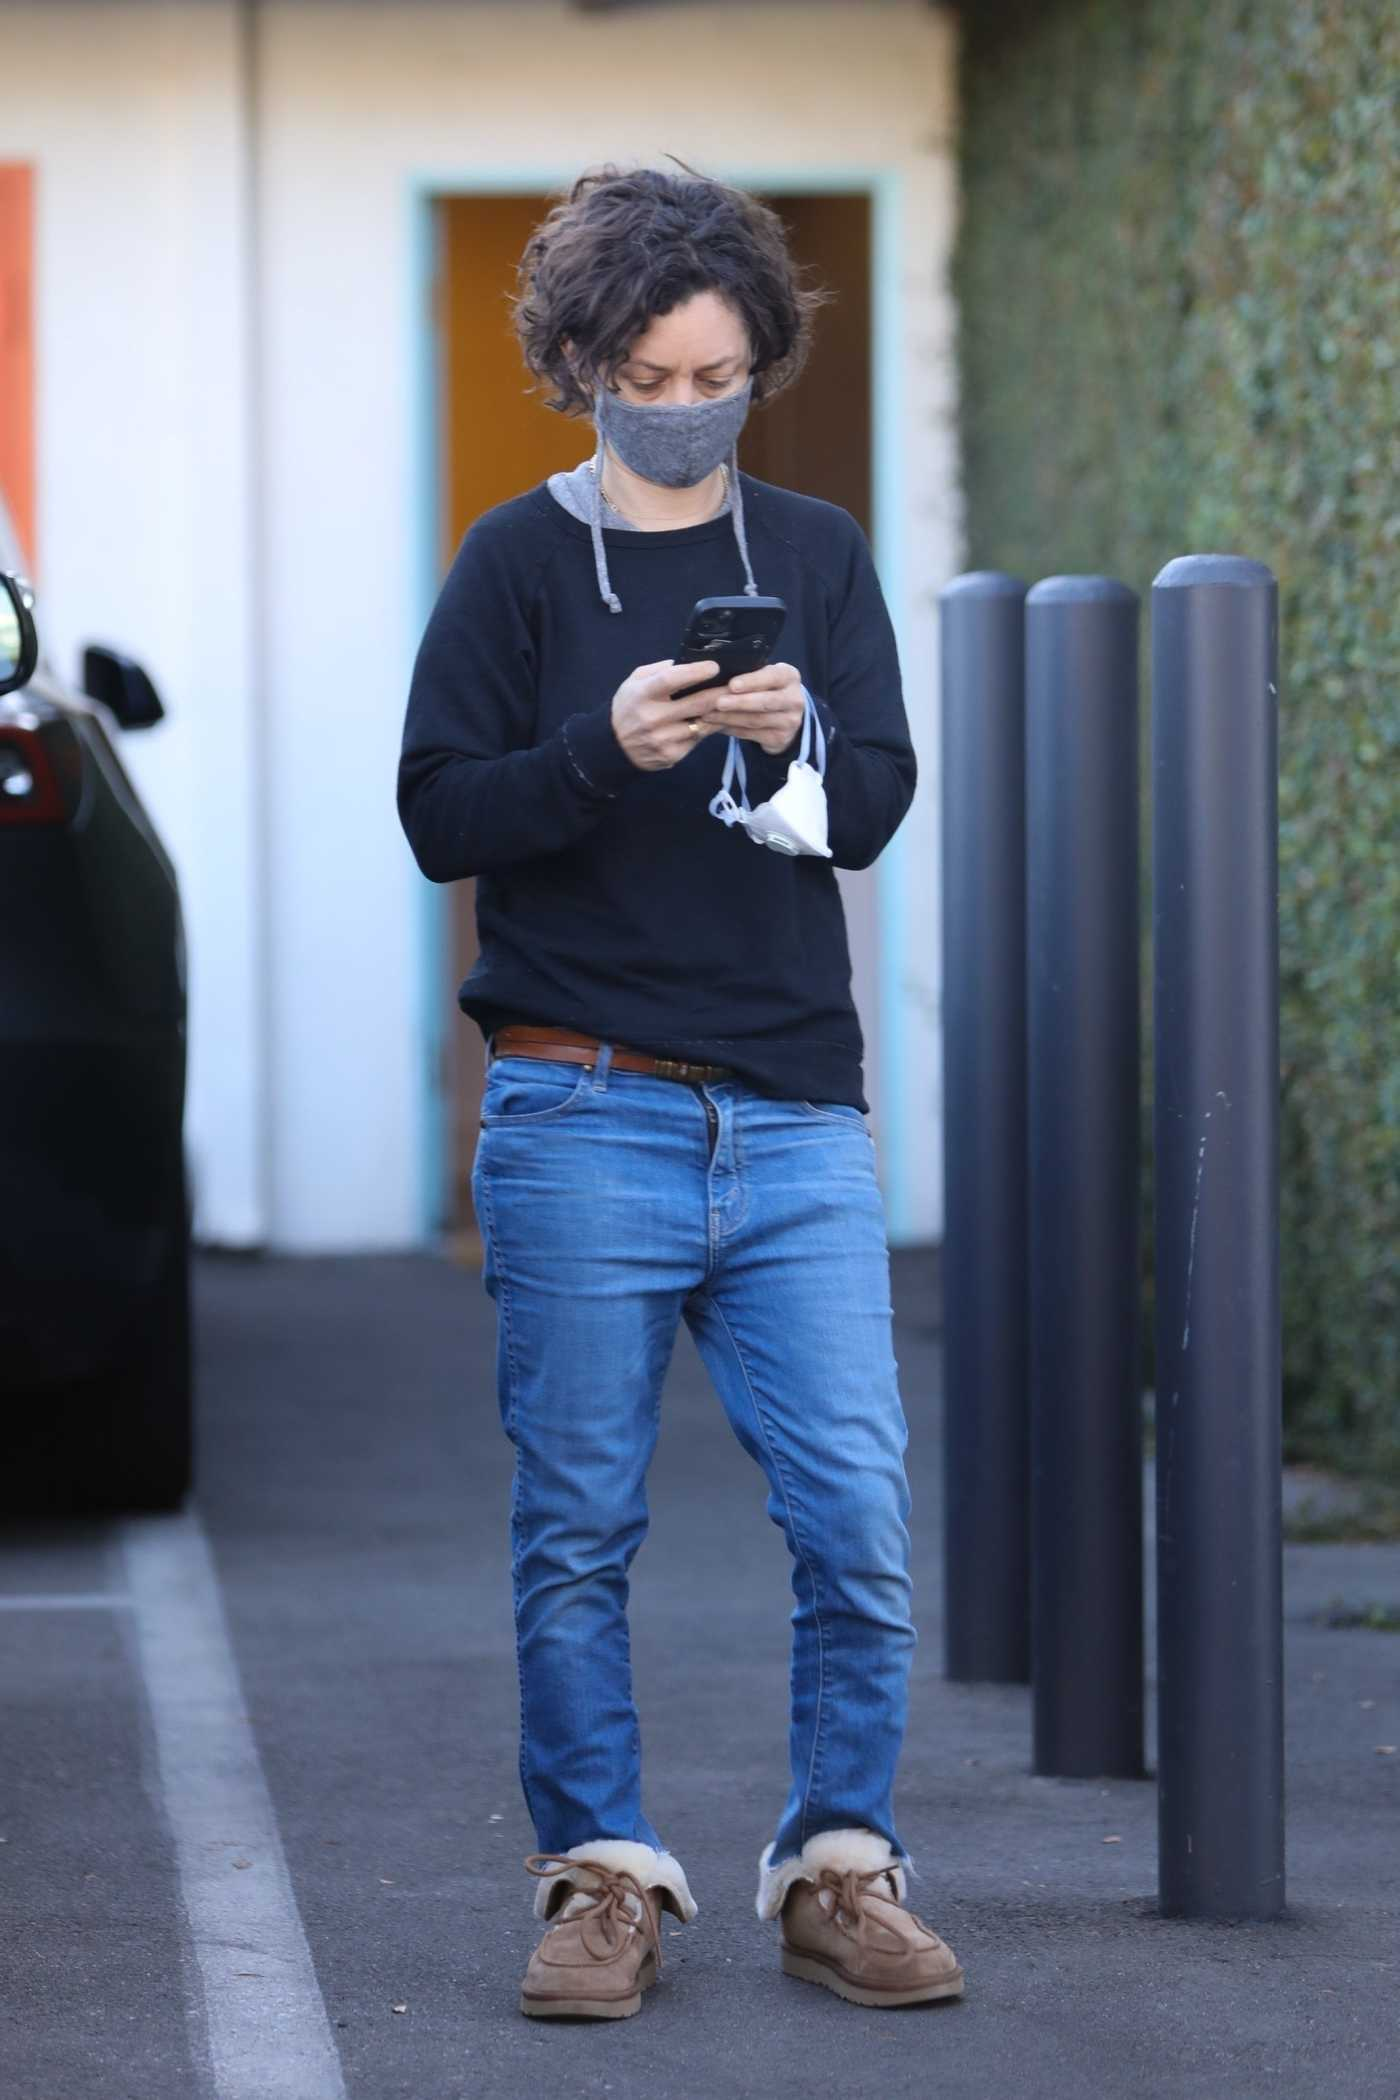 Sara Gilbert in a Grey Protective Mask Visits an Orthodontics Office in Los Angeles 11/19/2020